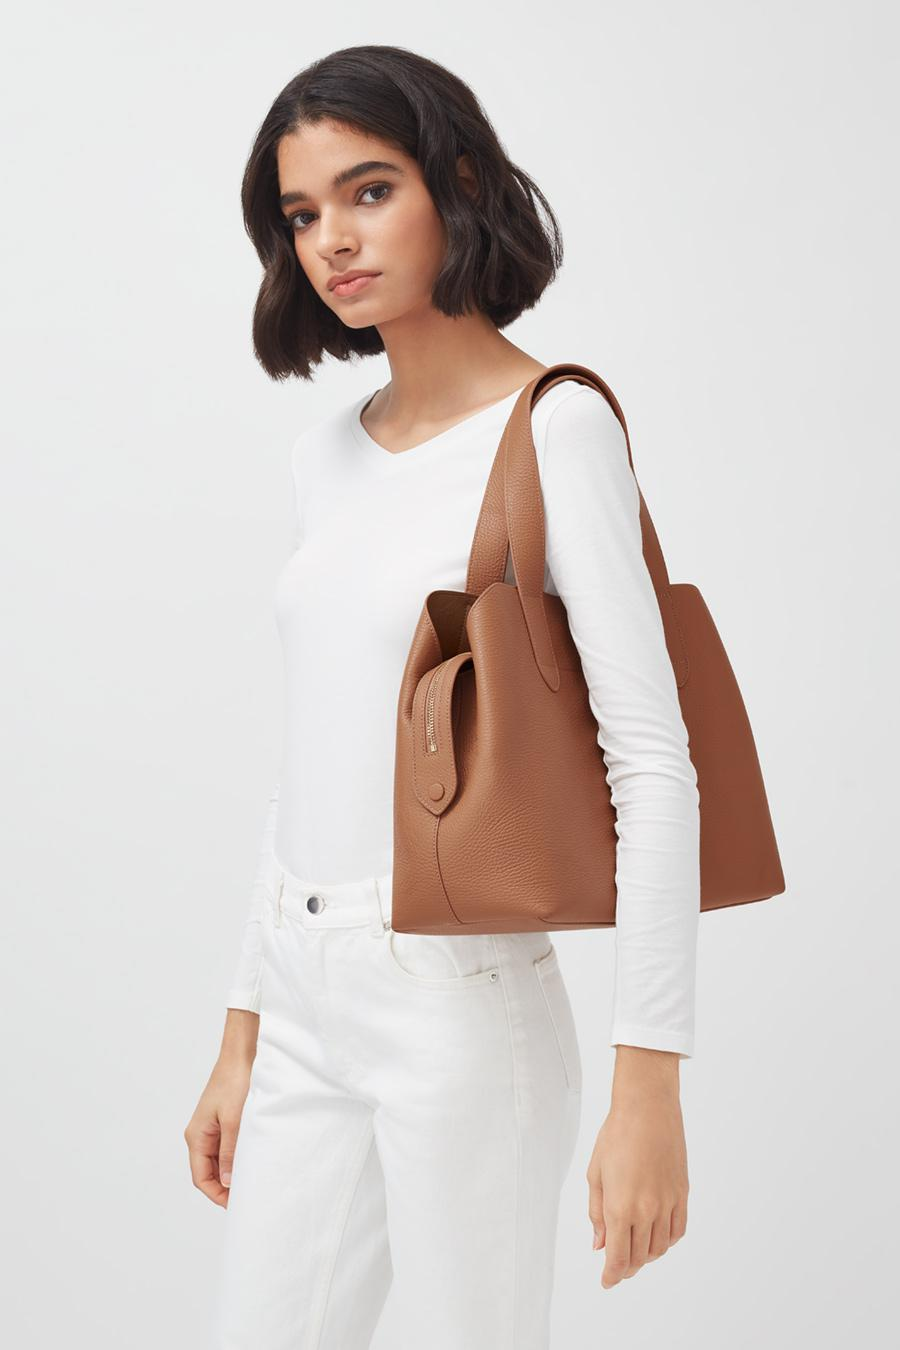 Women's Zippered Satchel Bag in Caramel | Pebbled Leather by Cuyana 3